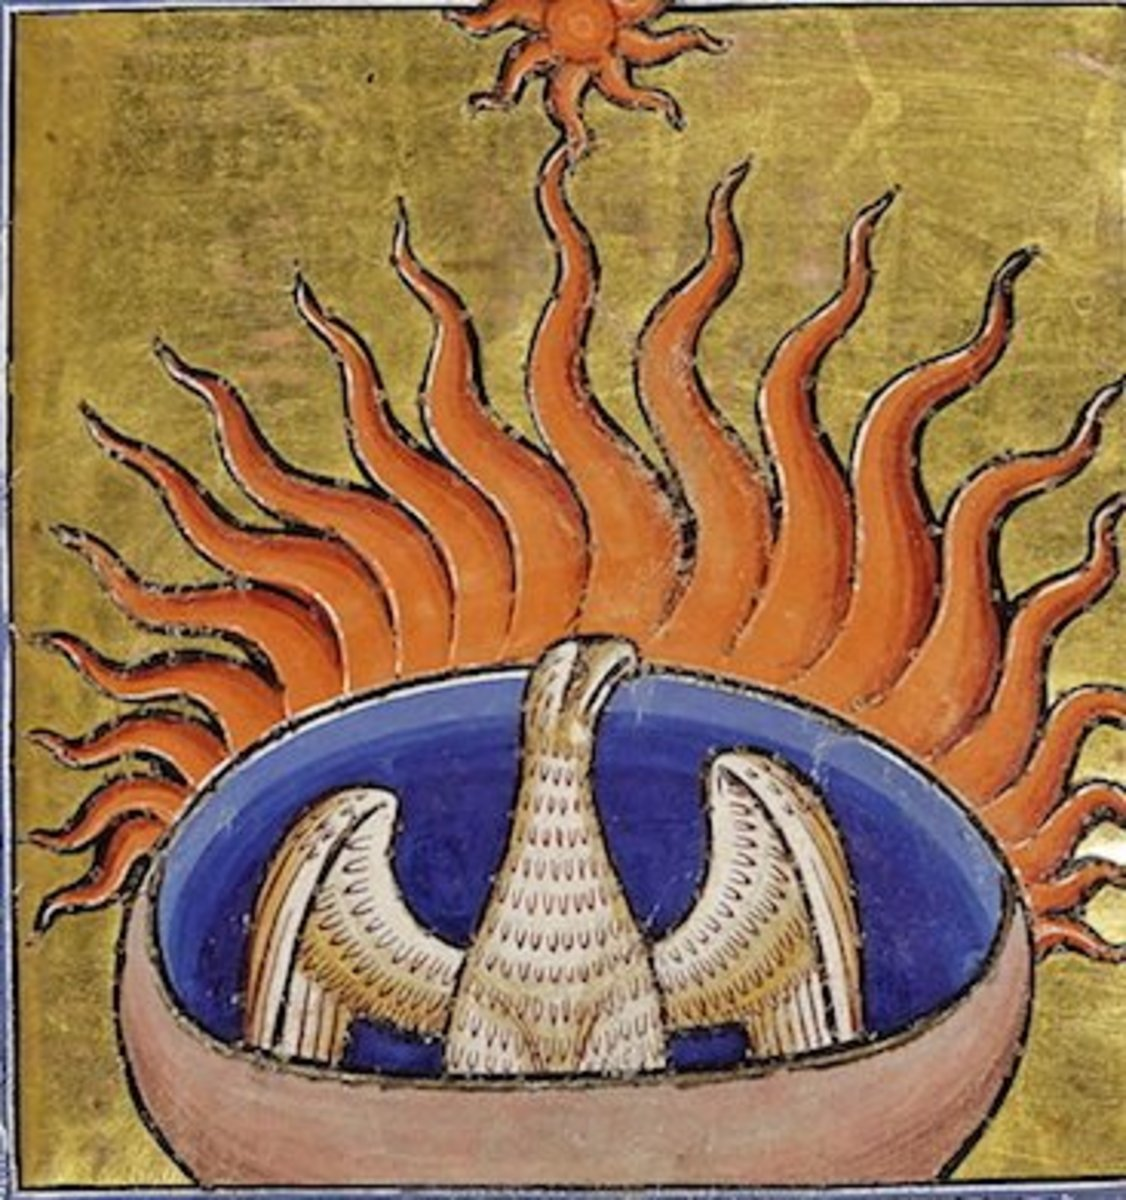 The phoenix is a symbol of rebirth from the ashes of the past. It is also representative of the victory of life over death.